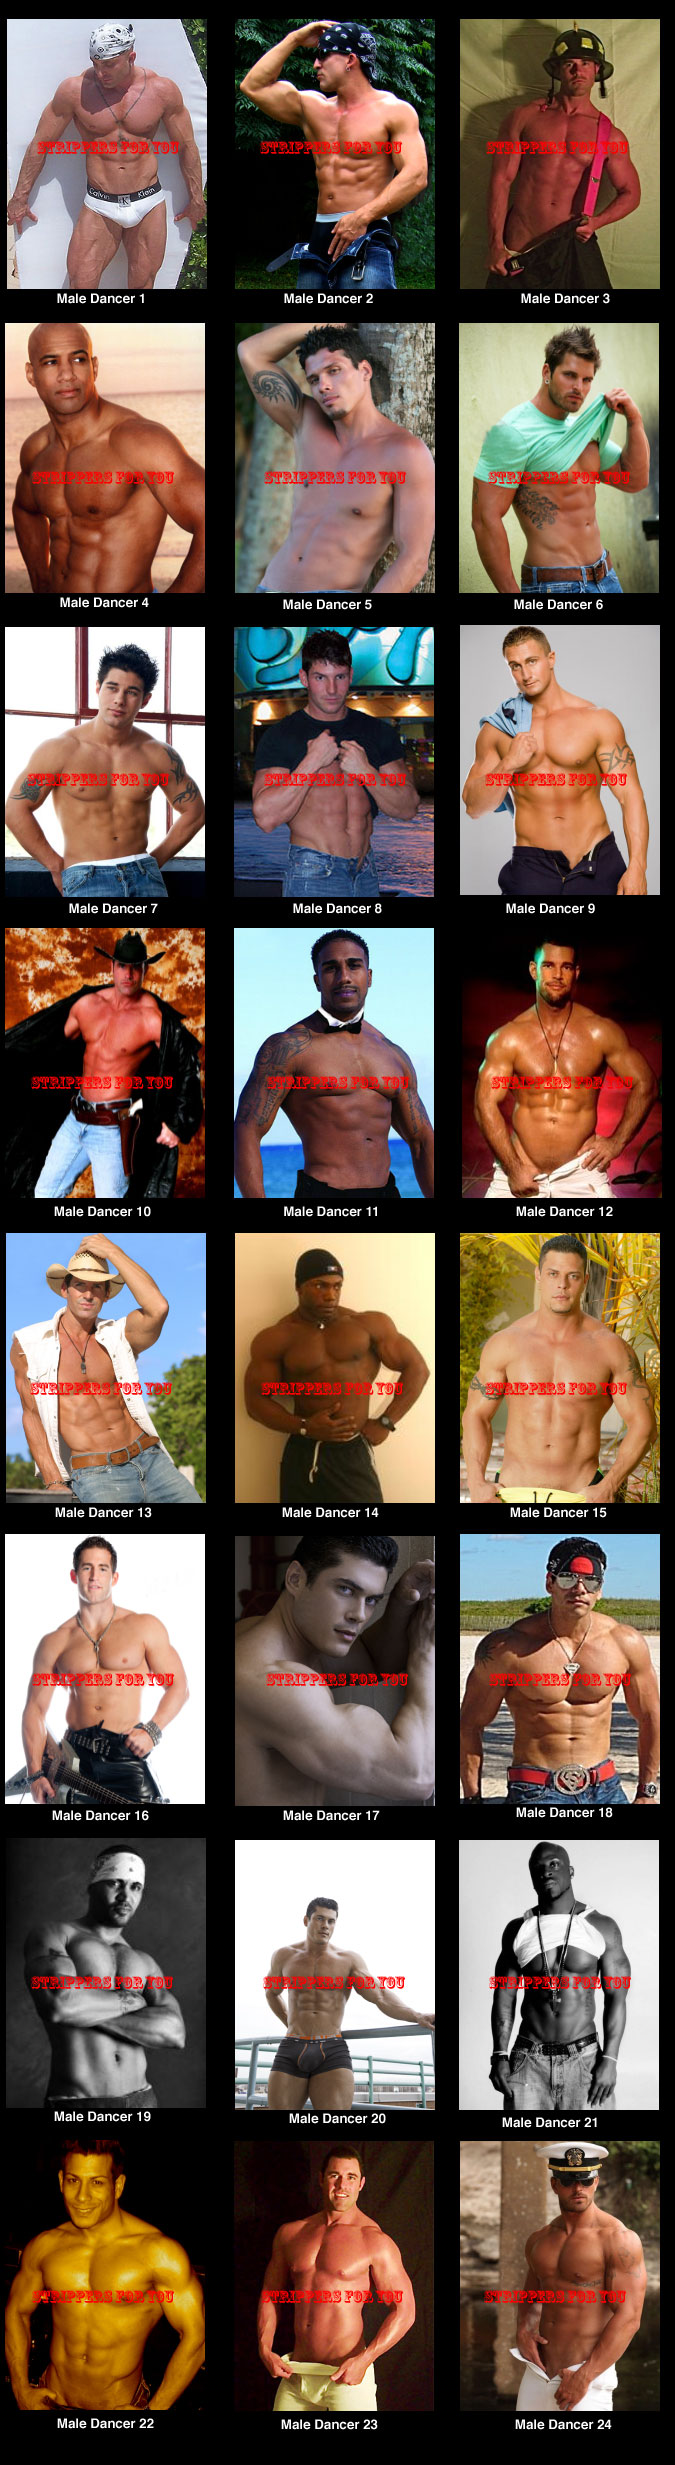 Baltimore male strippers